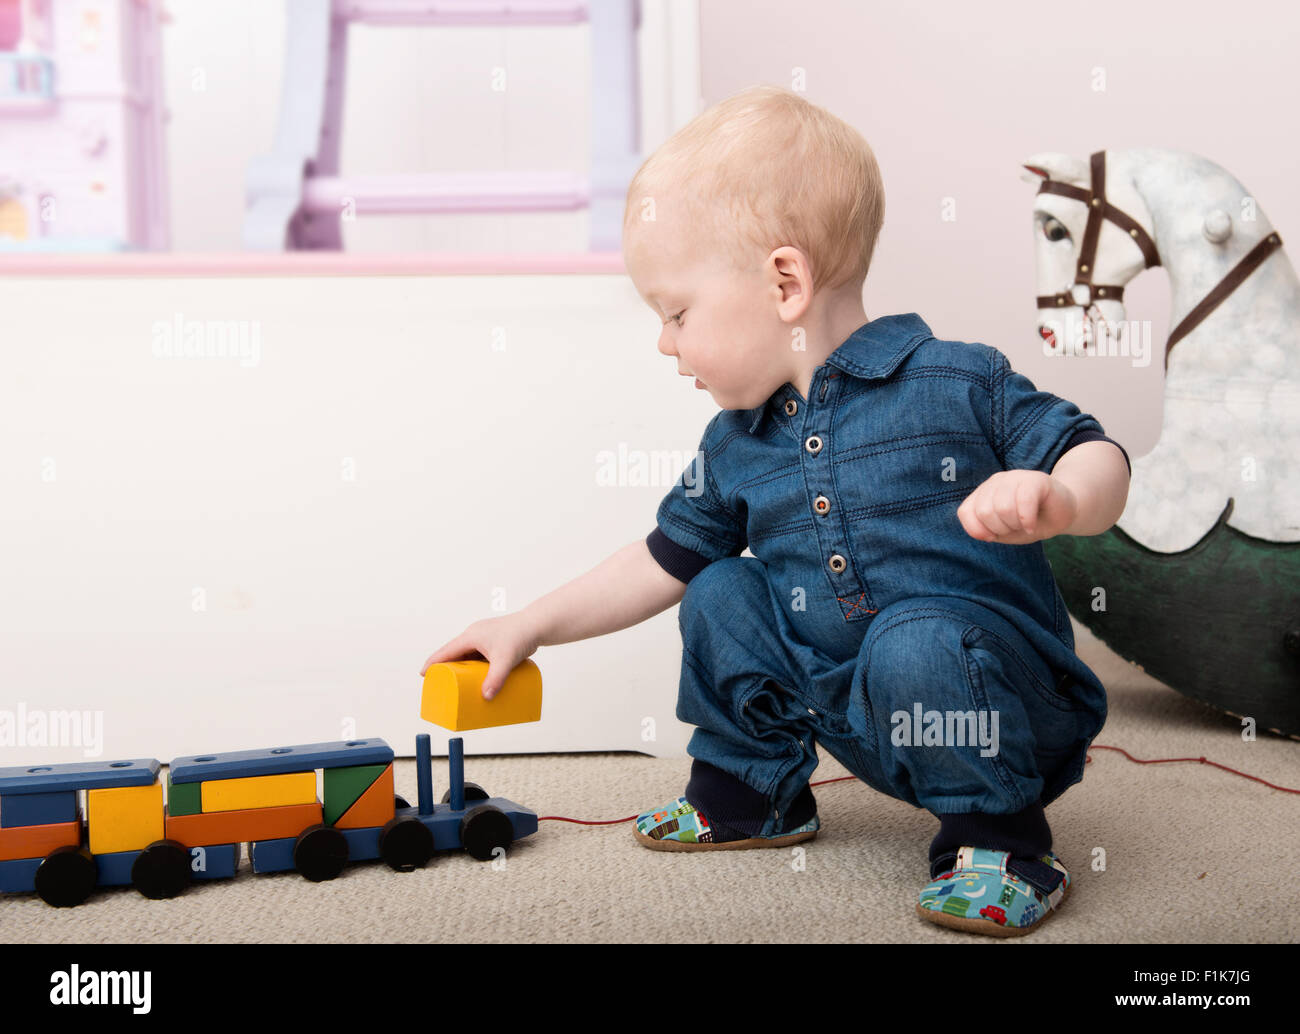 Smiling infant plays with toy train on playroom floor - Stock Image